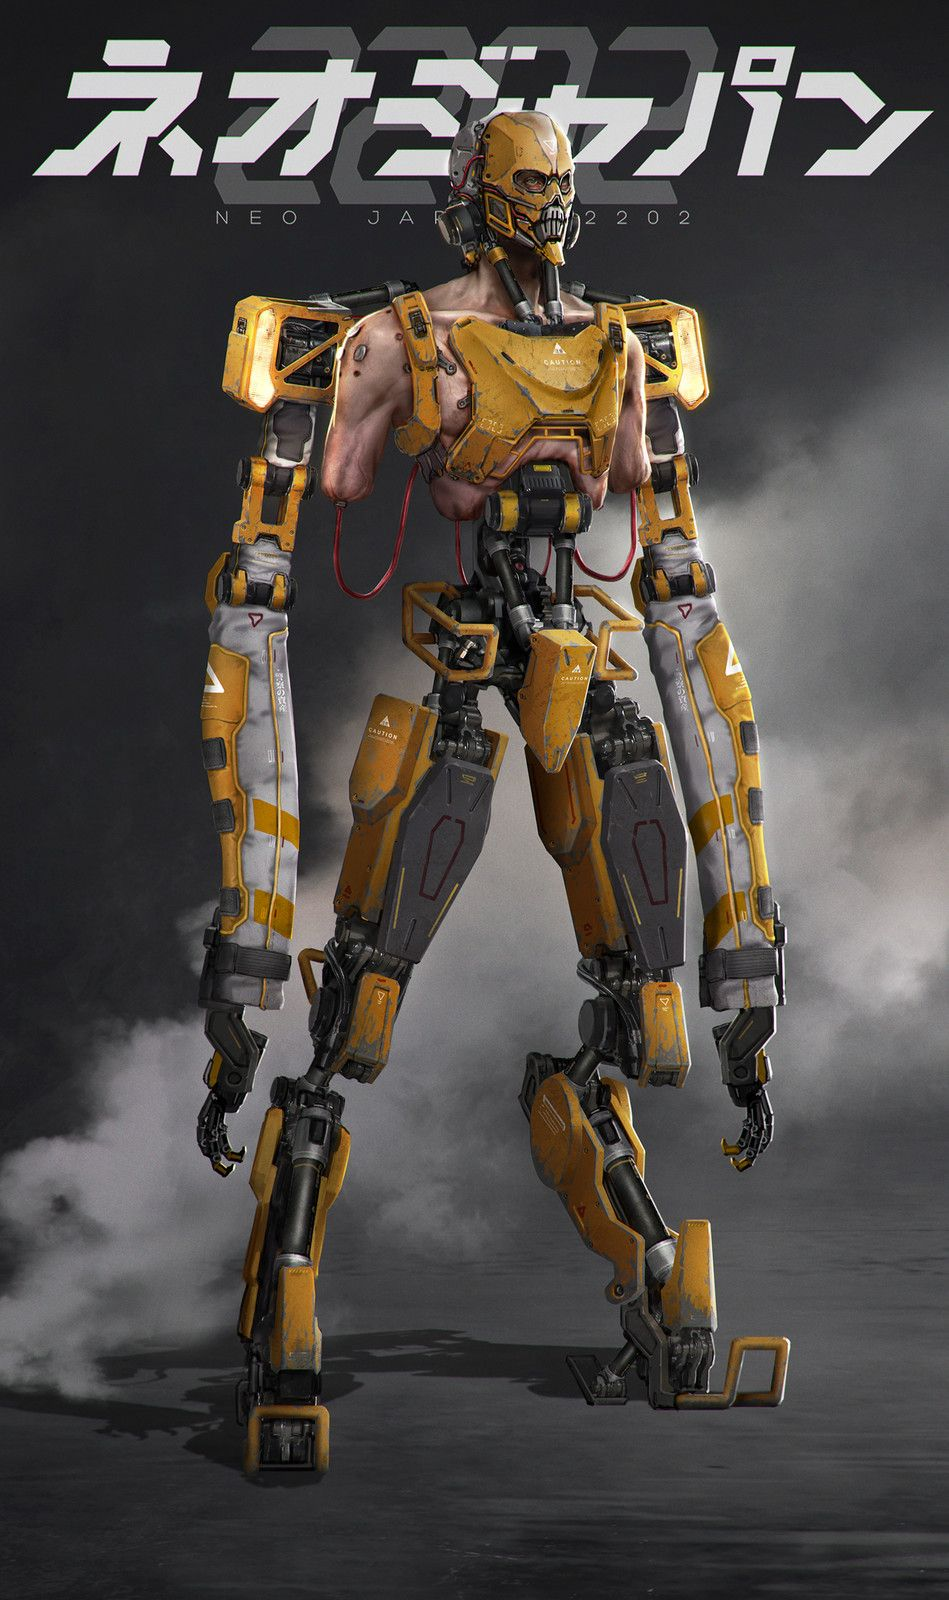 Neo Japan 2202 - Borei, Johnson Ting on ArtStation at https://www.artstation.com/artwork/d9DPe